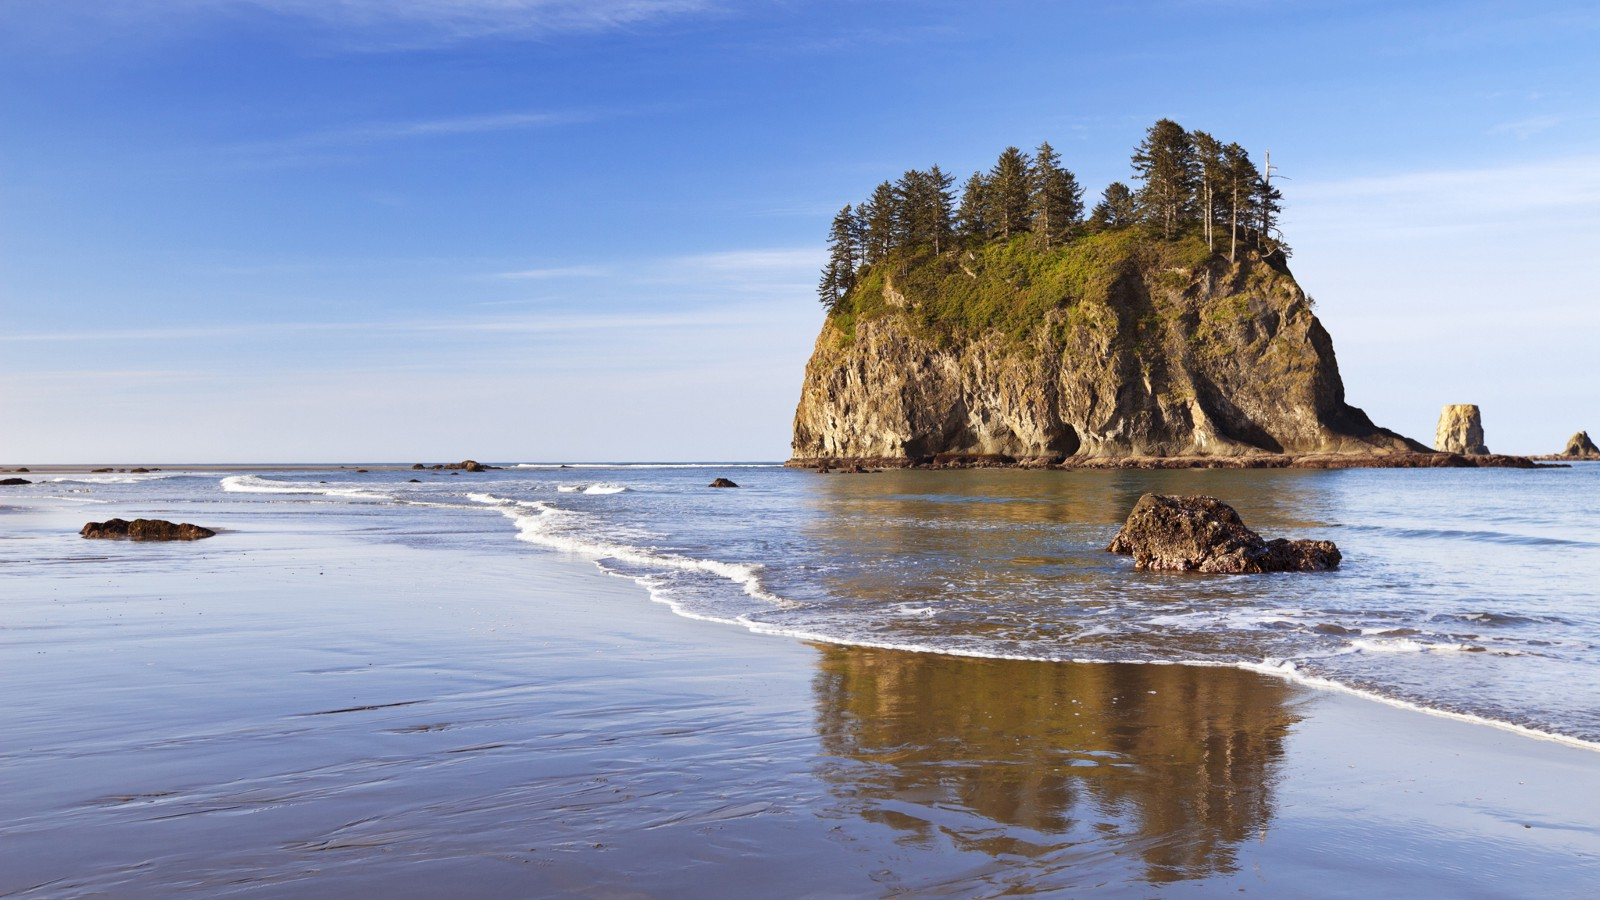 Second Beach on the Olympic Peninsula near La Push, Washington